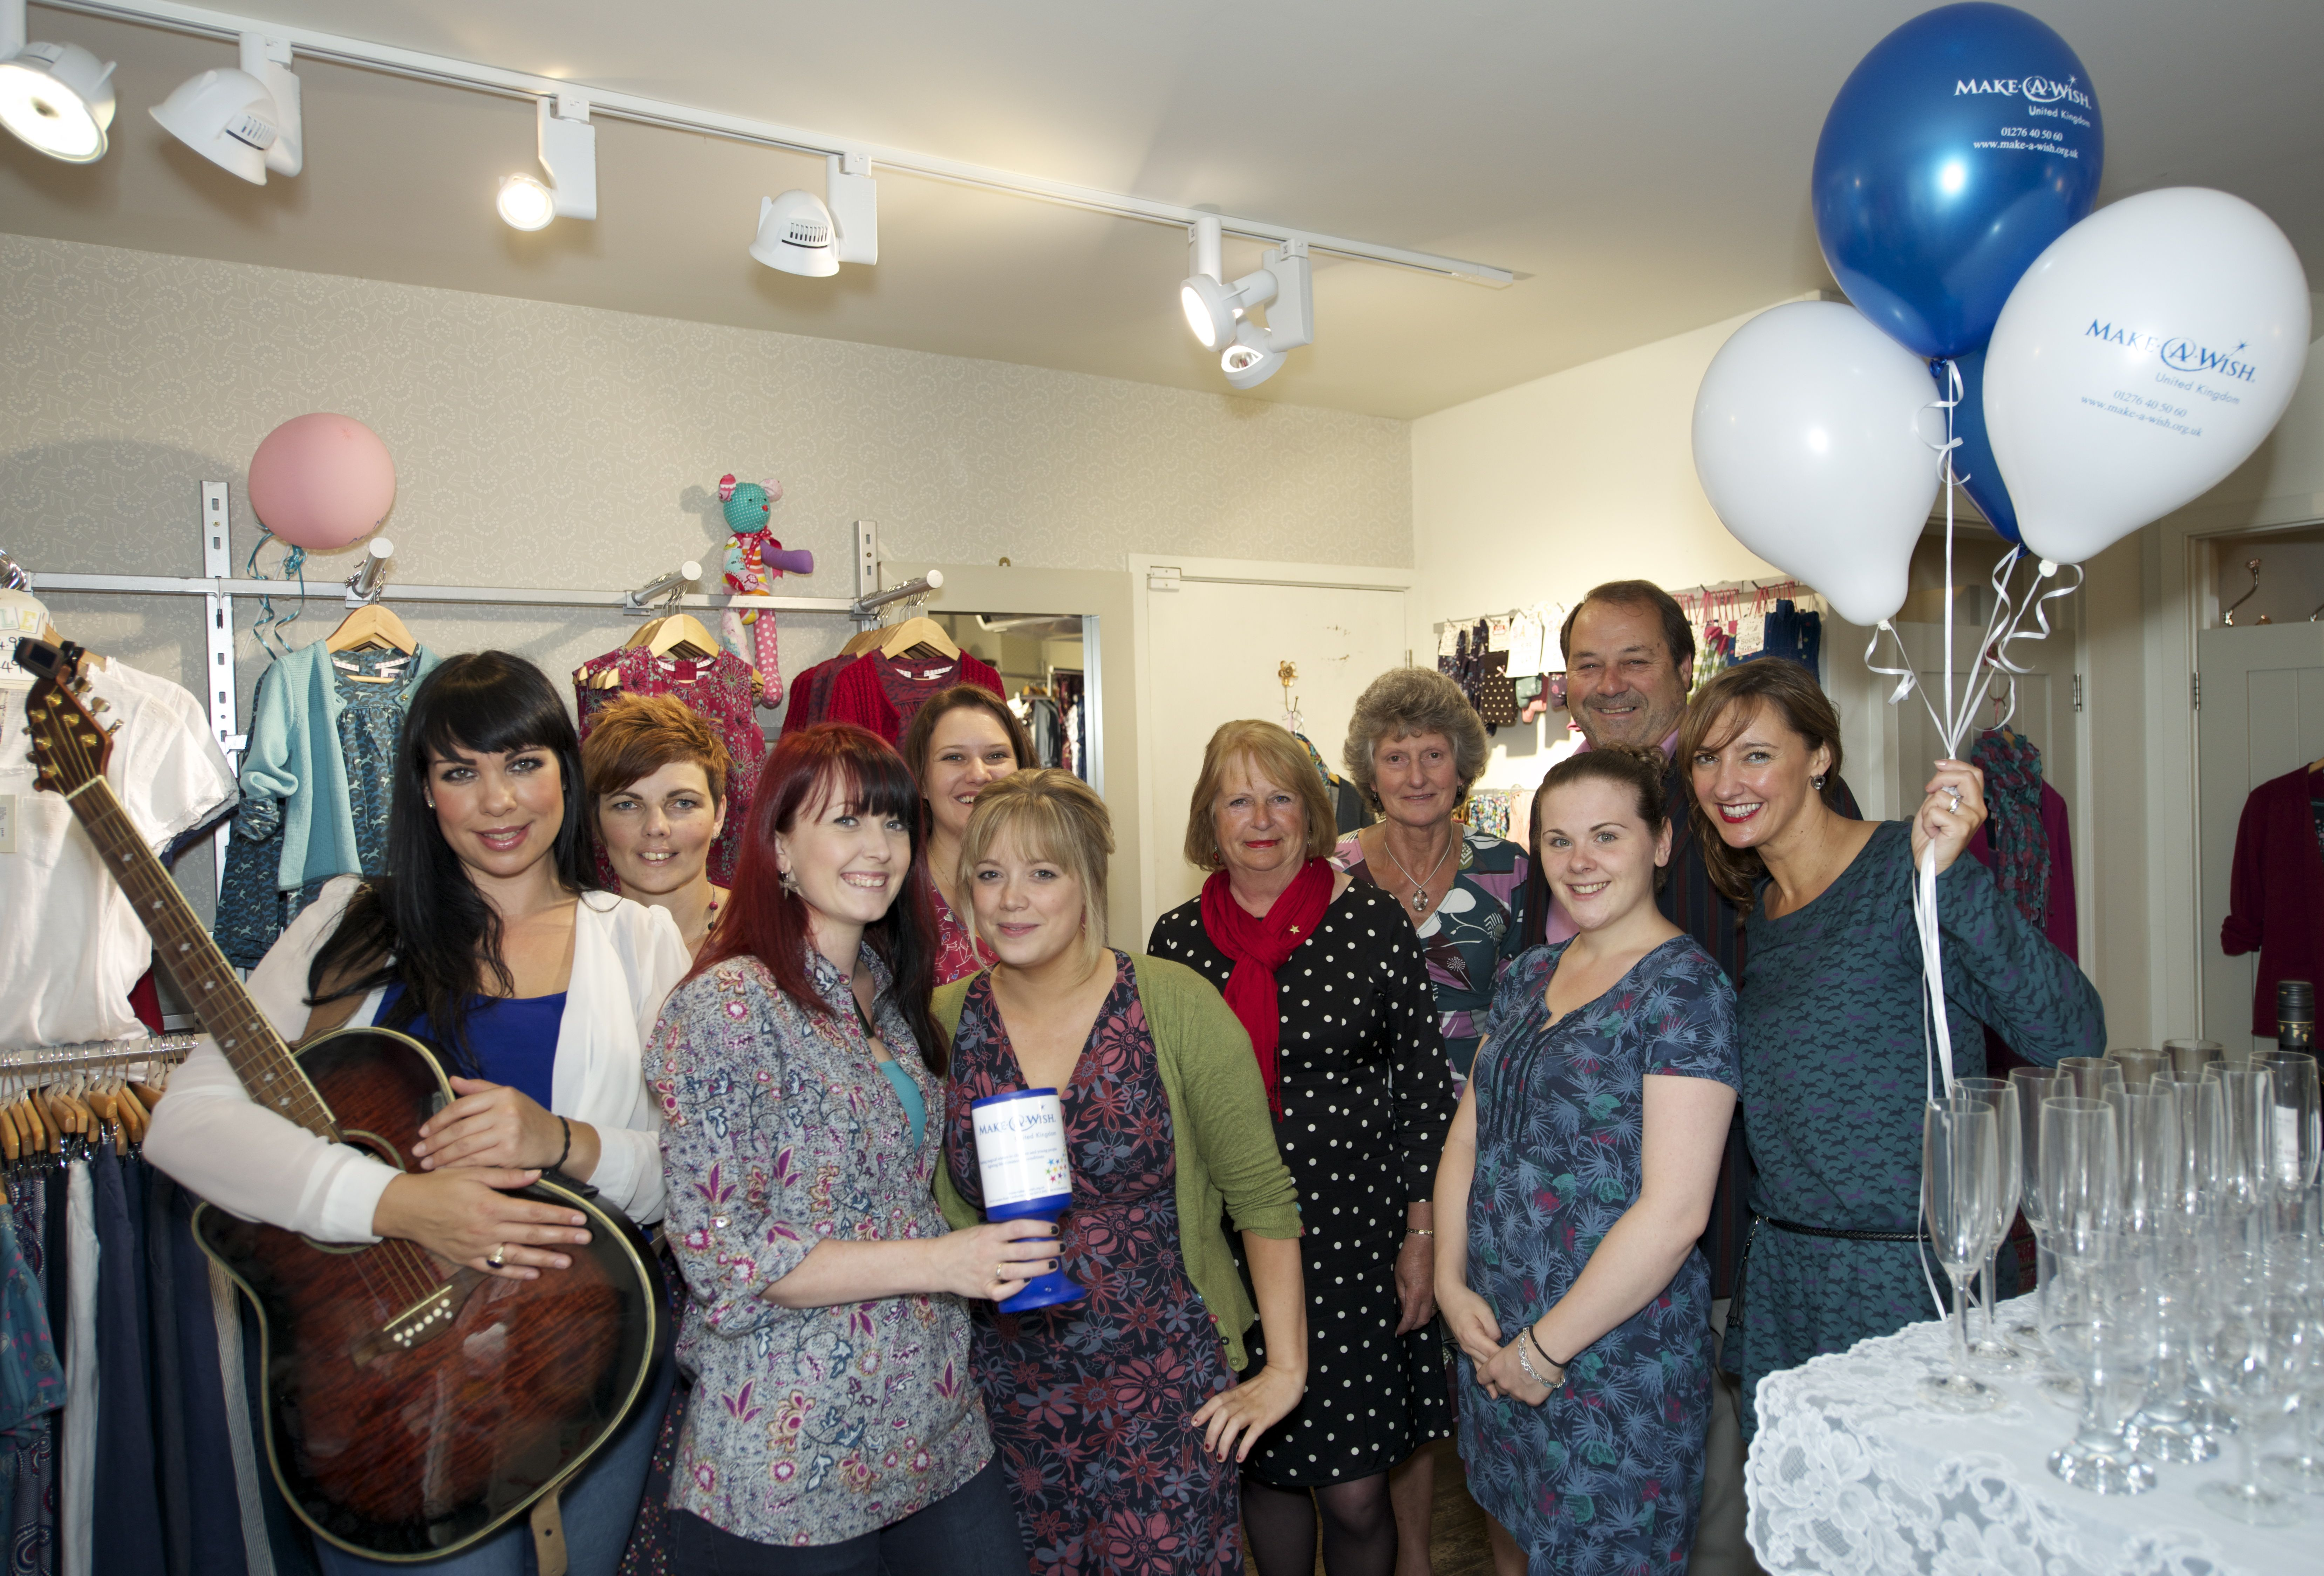 Mistral Dartmouth - Autumn Launch Evening supporting Make A Wish Foundation and raised £300